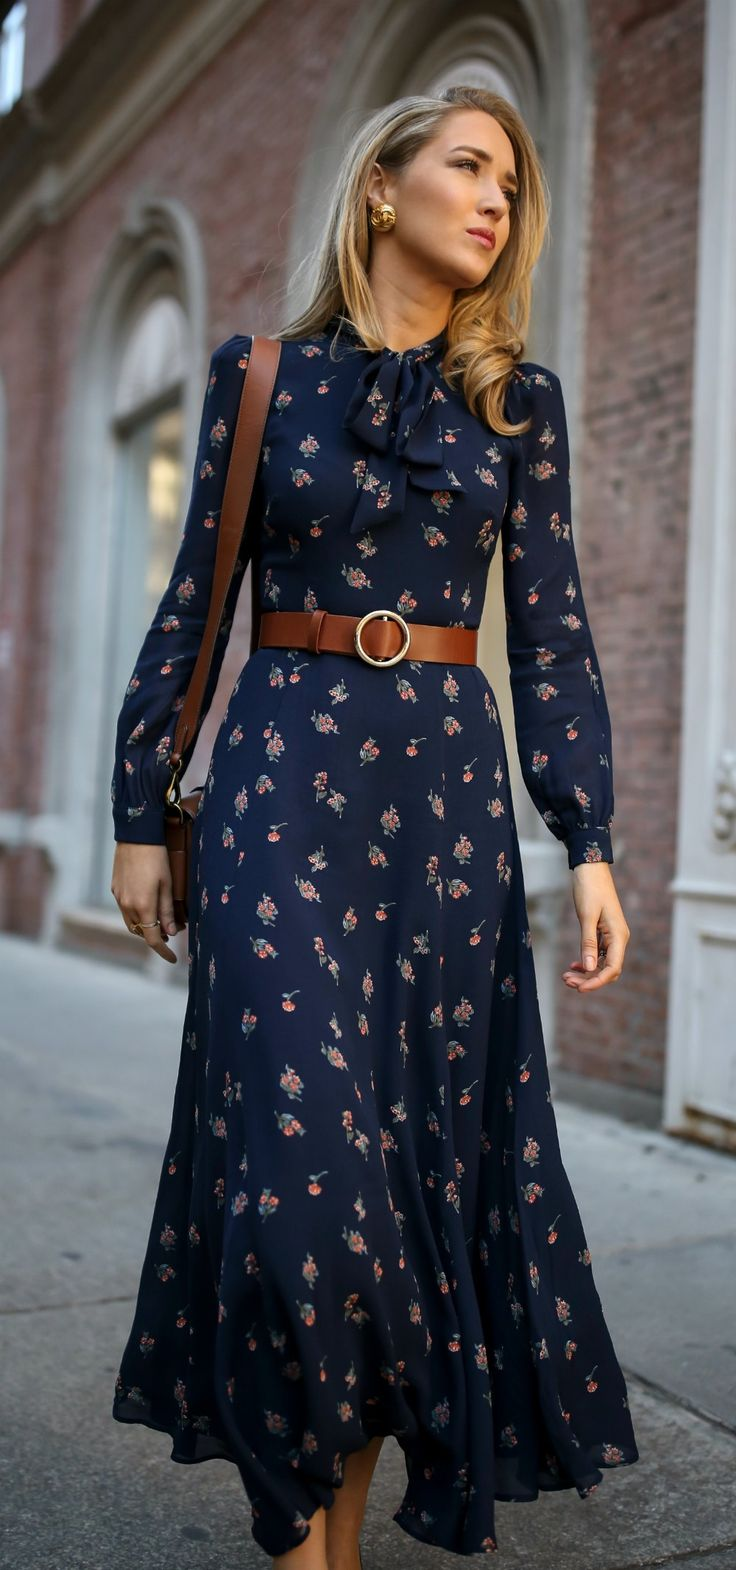 2622 best Fashion images on Pinterest | Dress in, 50s dresses and ...